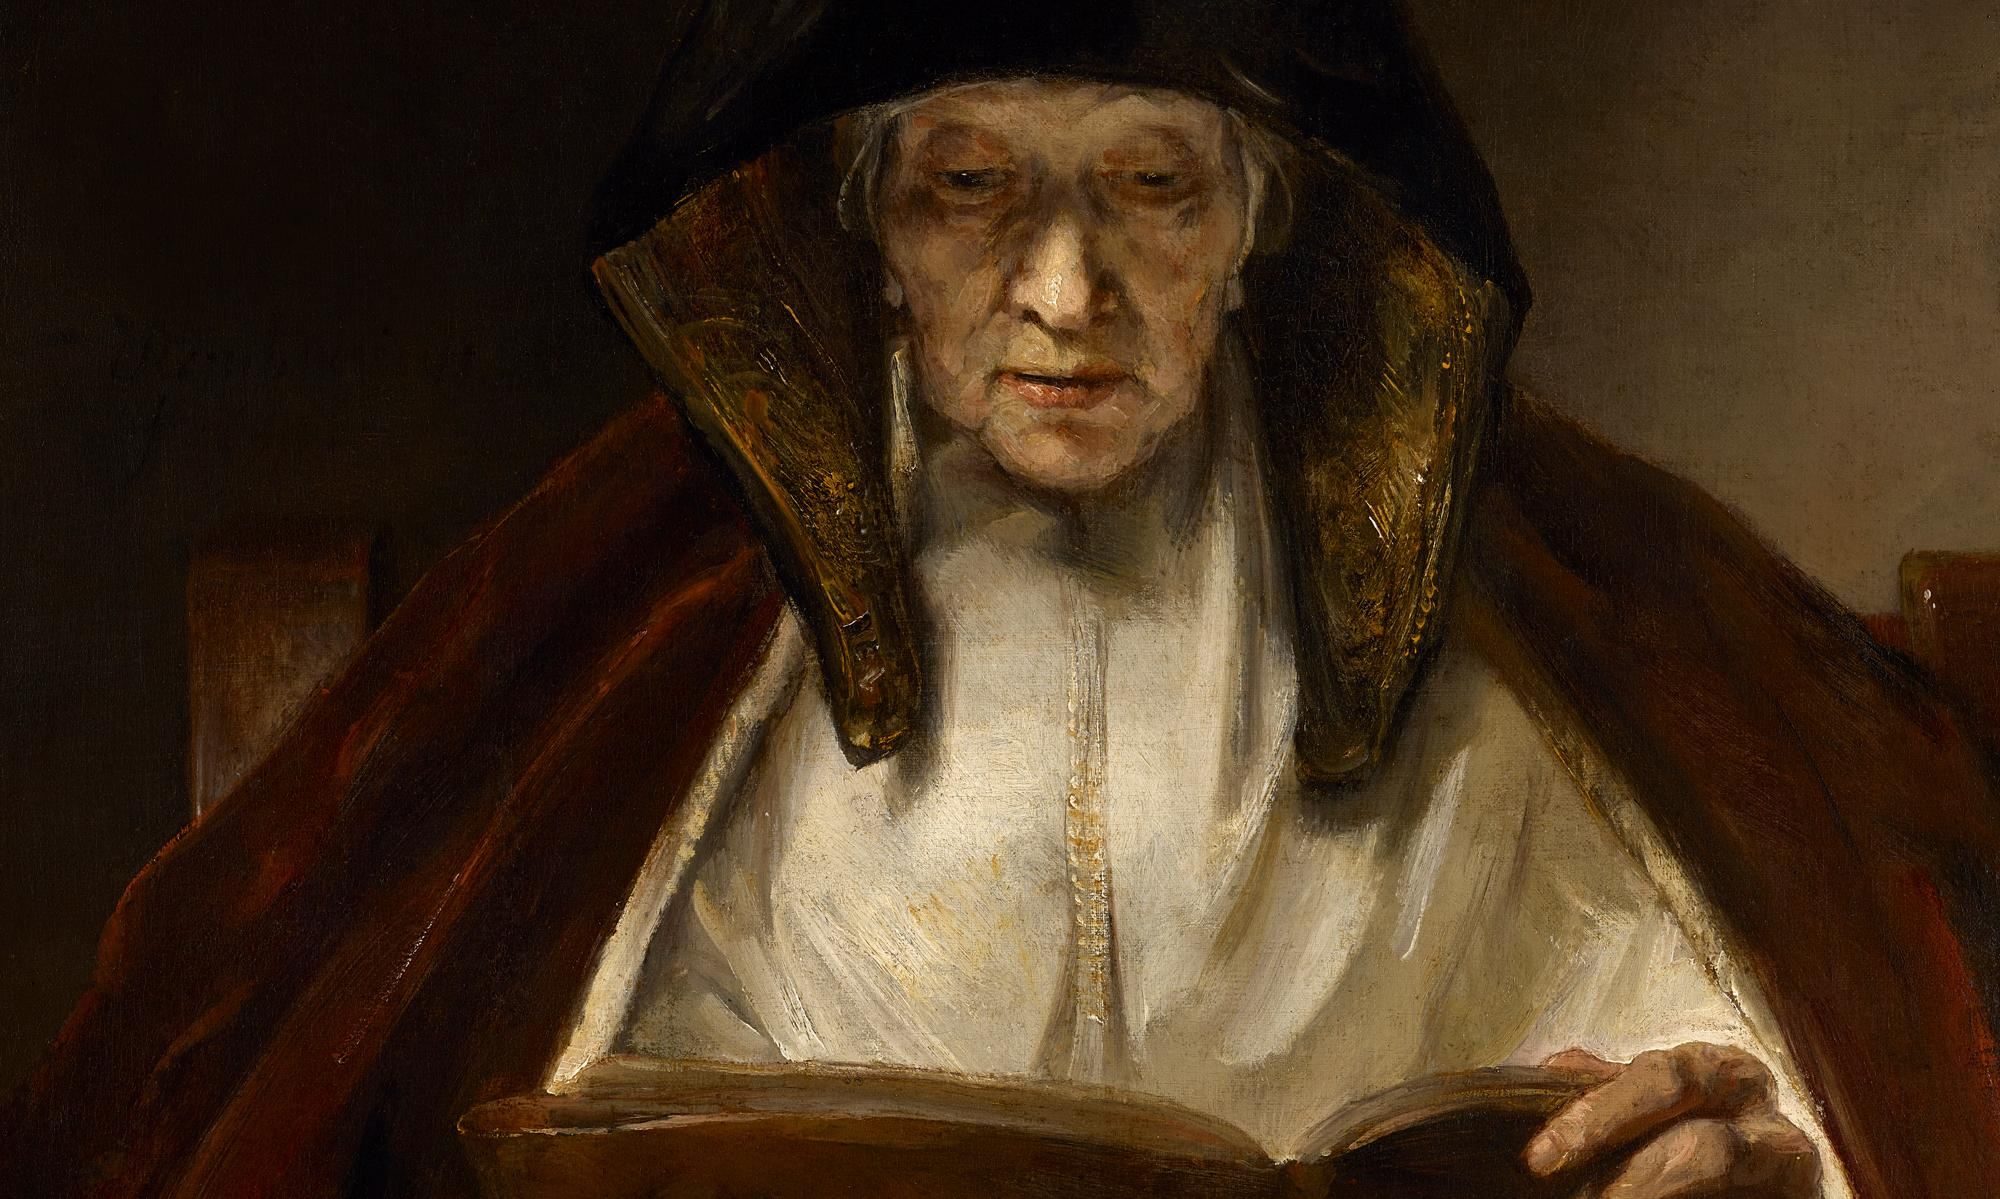 Rembrandt's An Old Woman Reading: subtle drama and rugged human experience